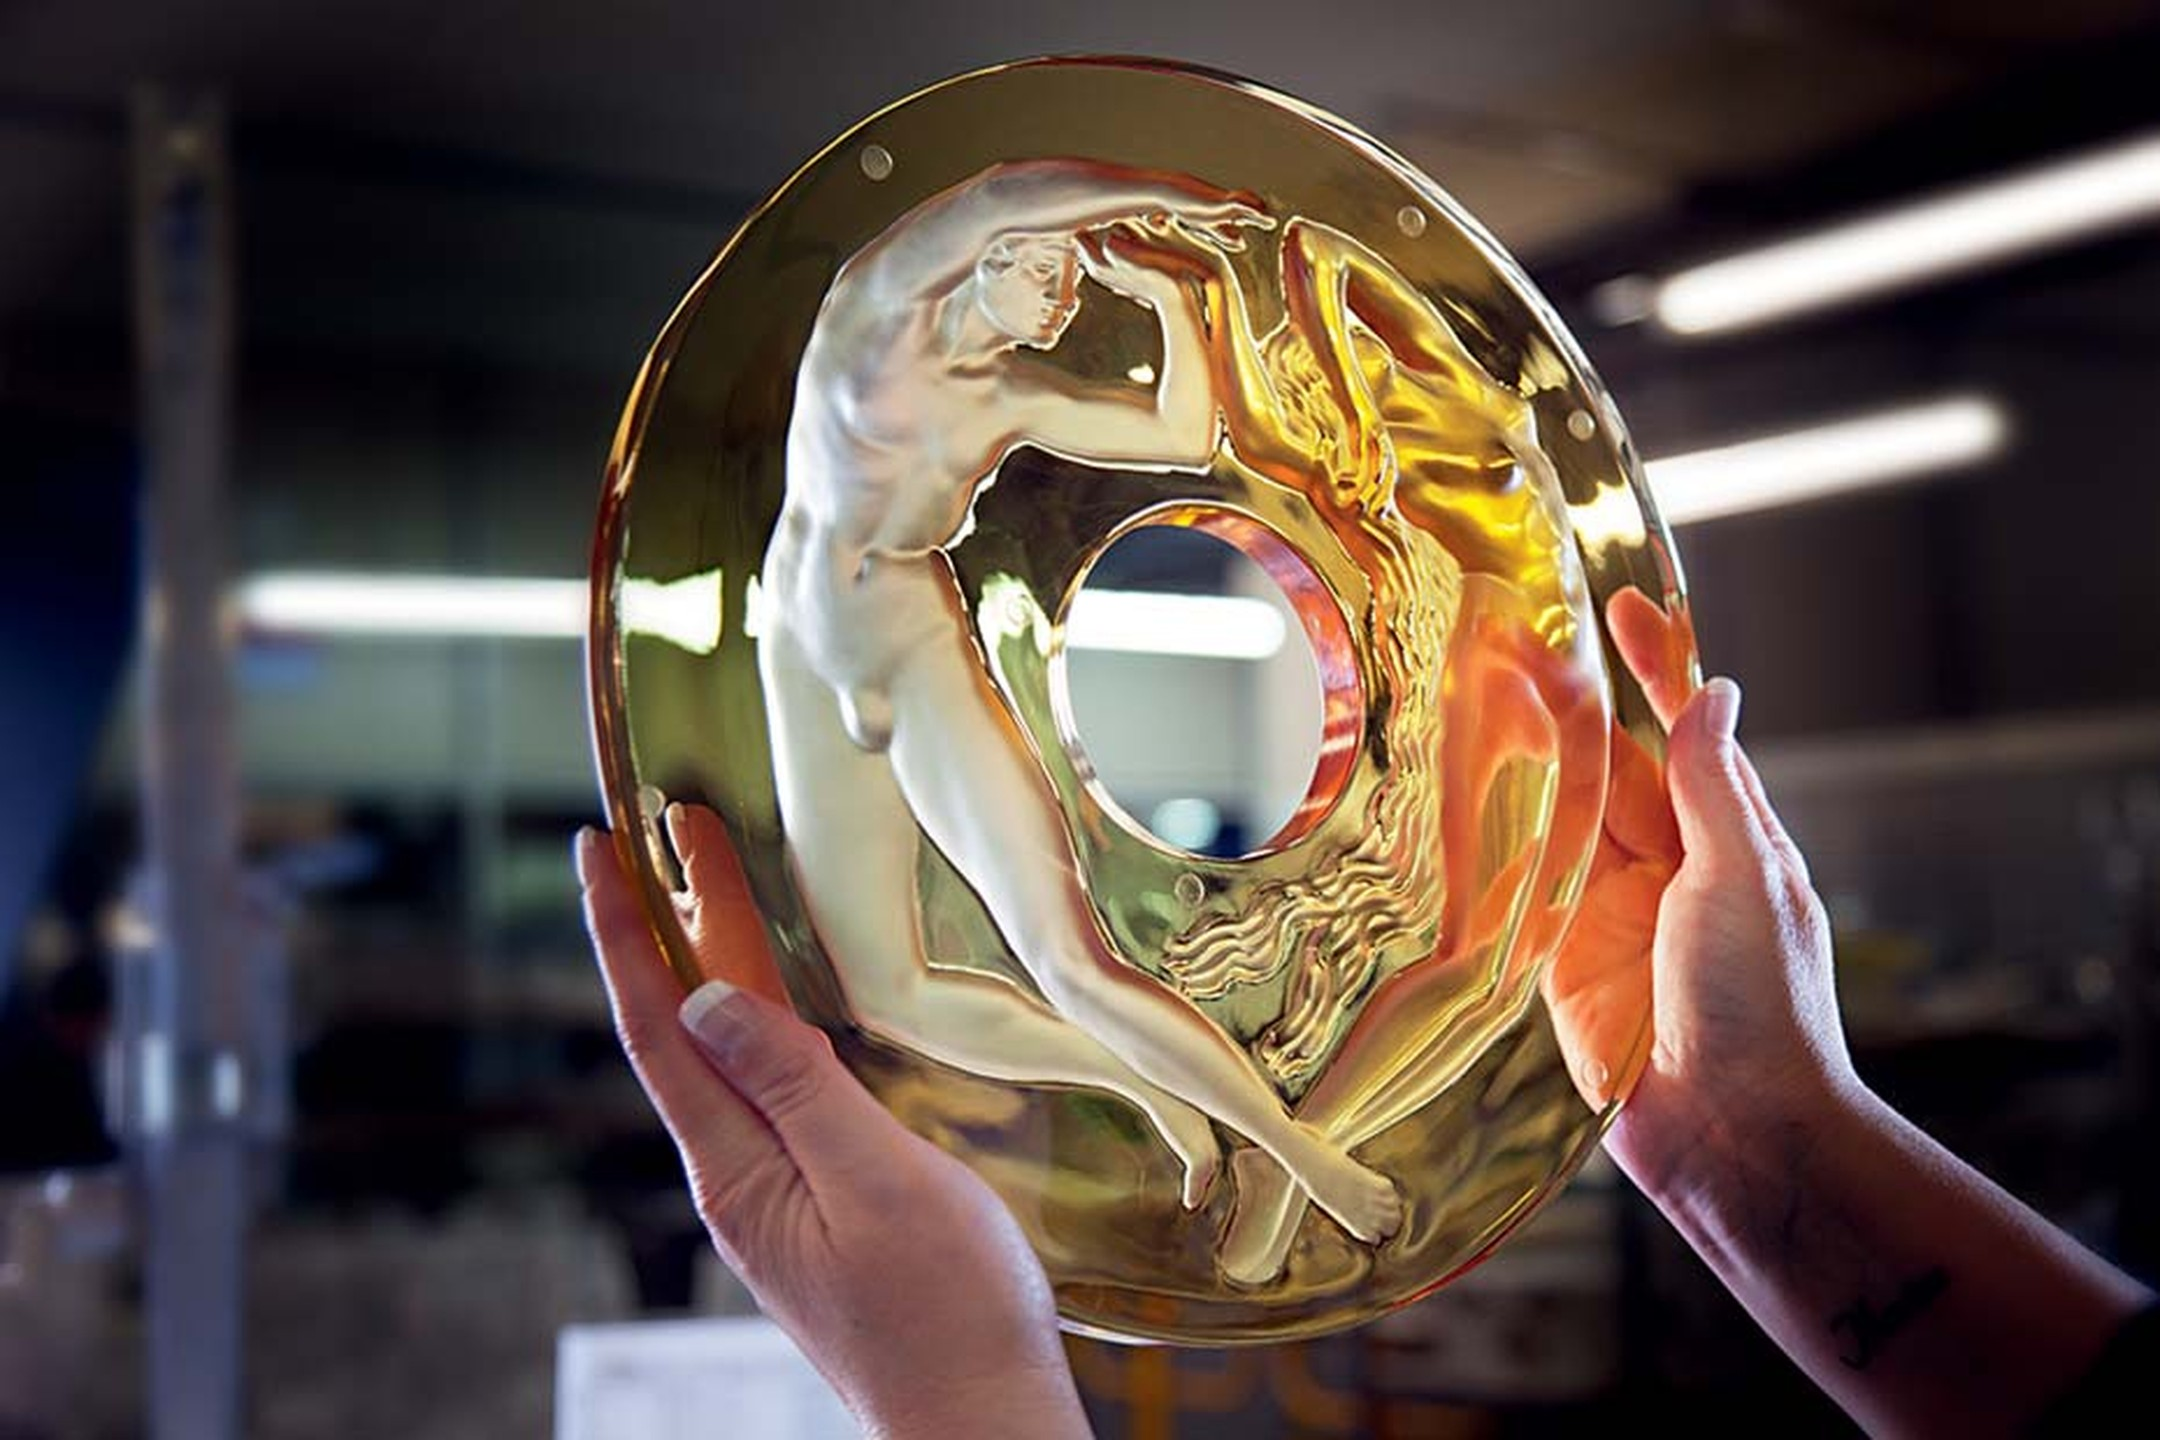 A glassmaker at Lalique inspects the crystal casing that will frame the Parmigiani clock.